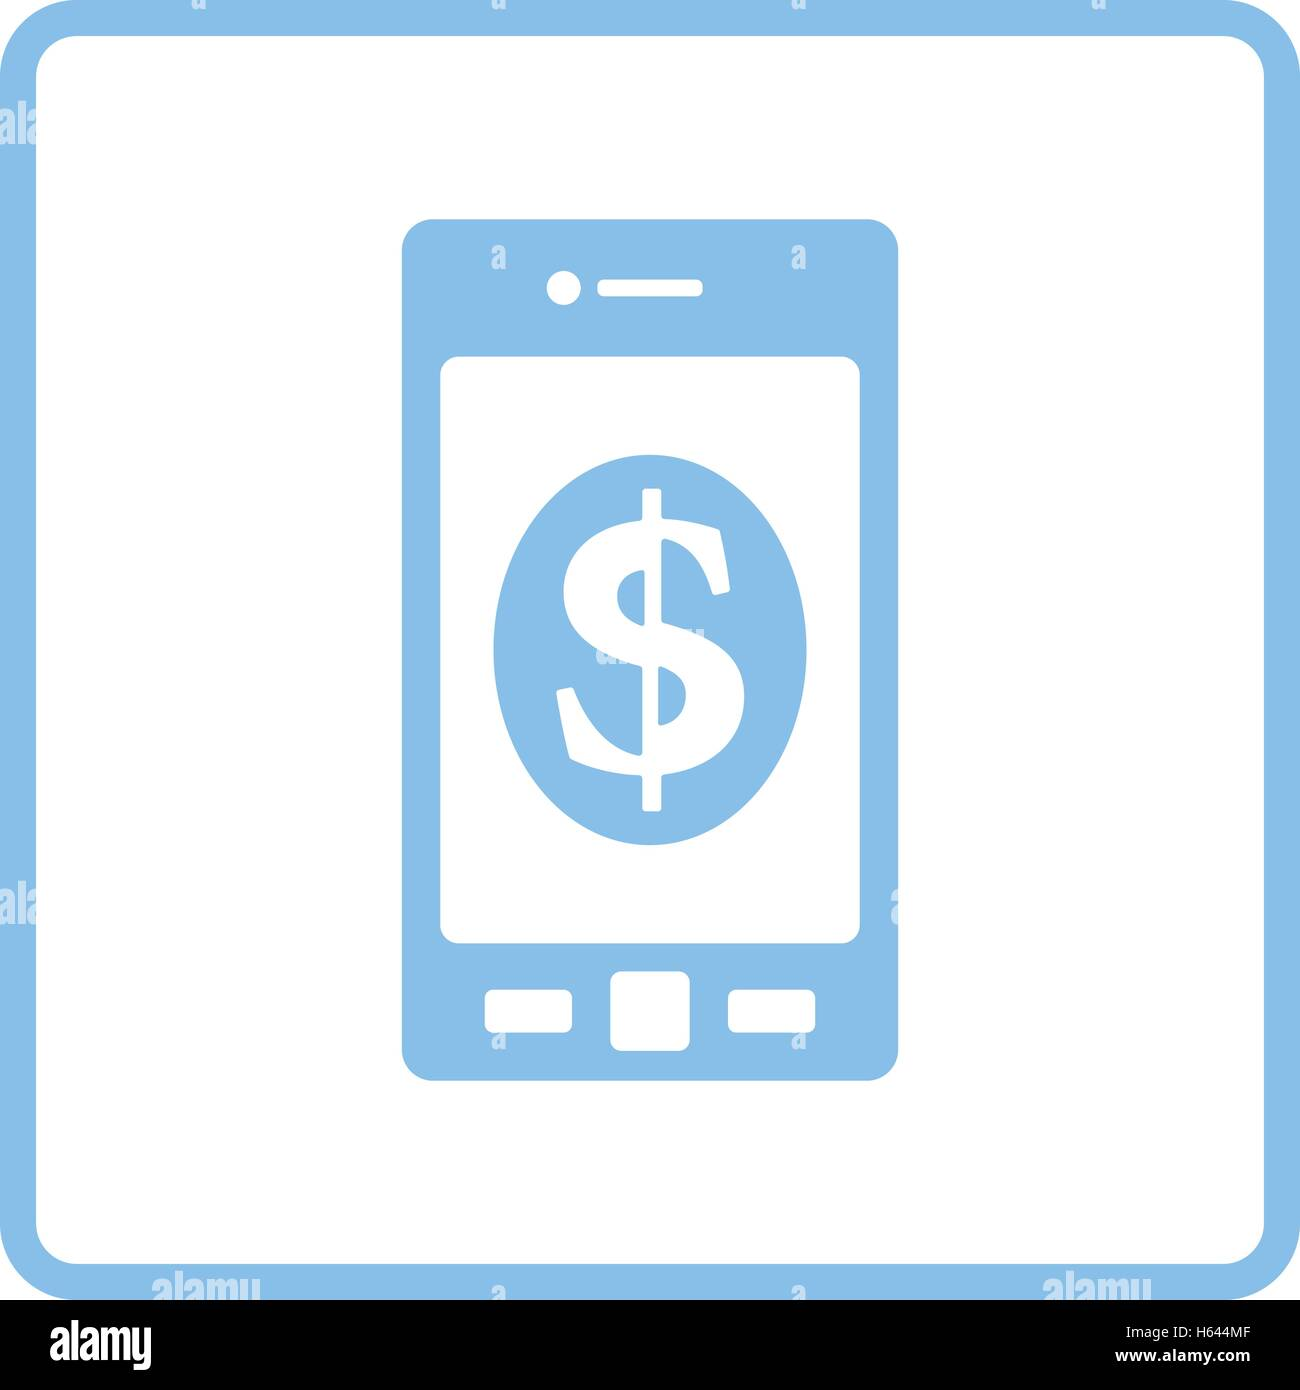 Smartphone with dollar sign icon. Blue frame design. Vector illustration. - Stock Vector